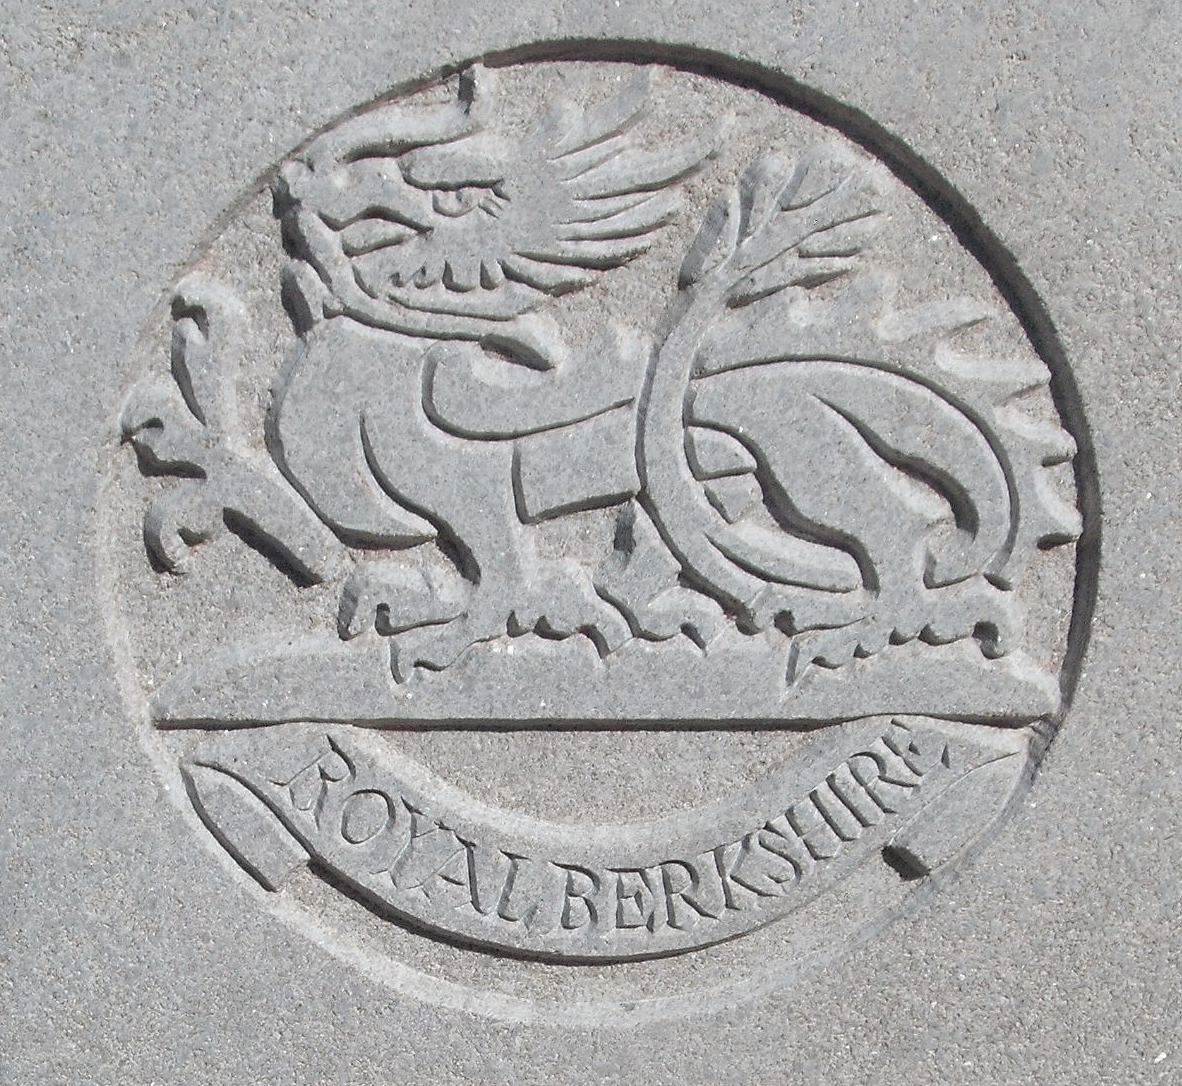 Capbadge of the Royal Berkshire Regiment